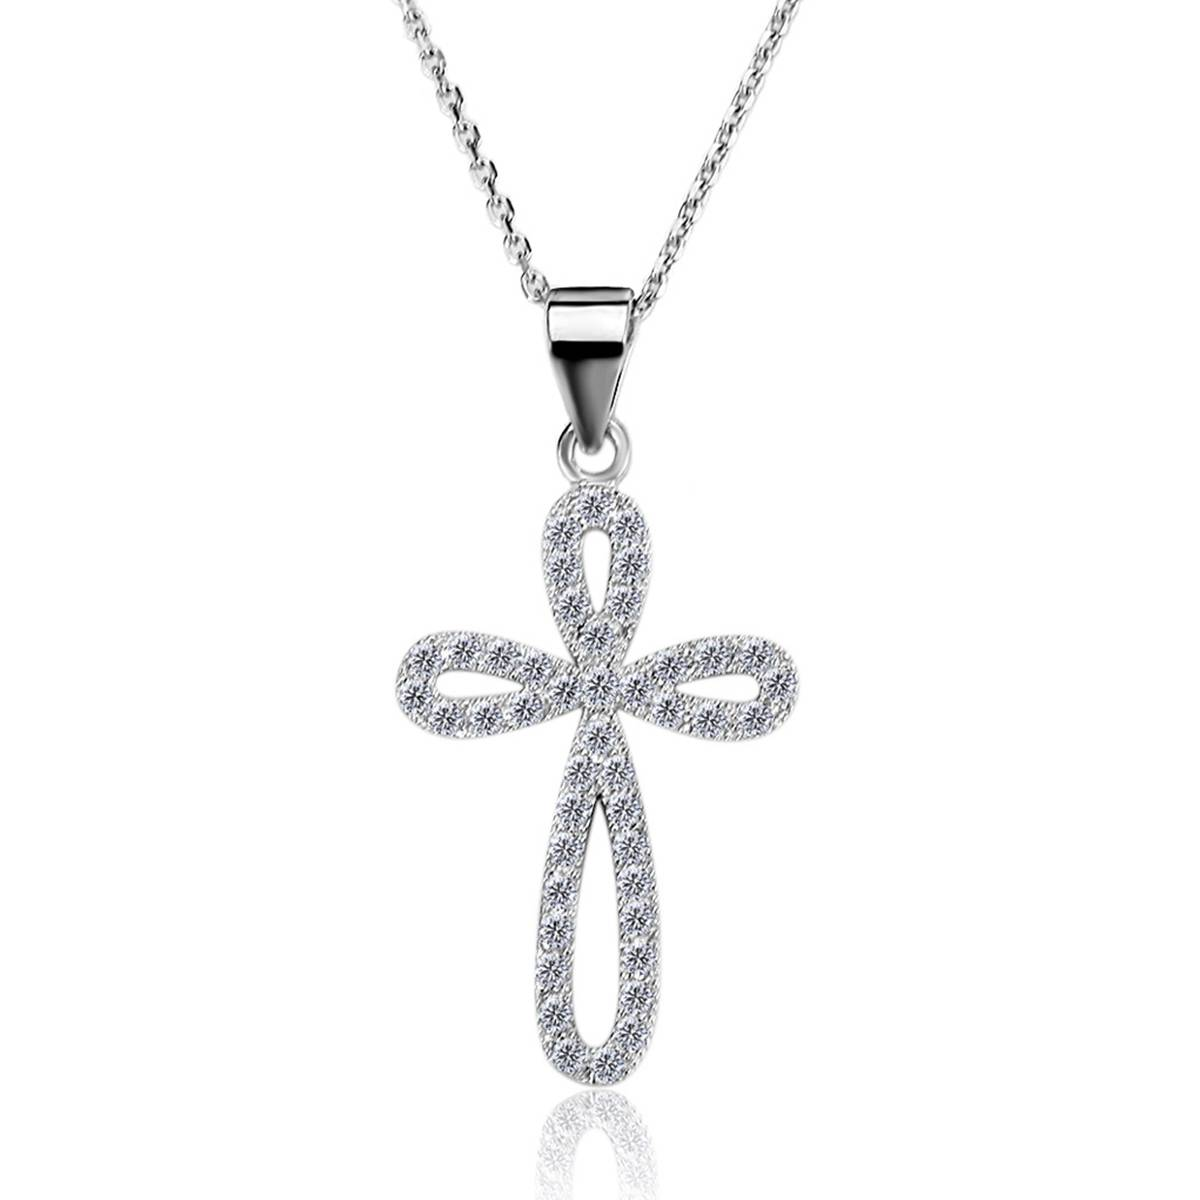 Shiny Star New Arrivals 925 Silver Cross Necklace with Link Chain Clear White AAA Zircon Necklace Pe